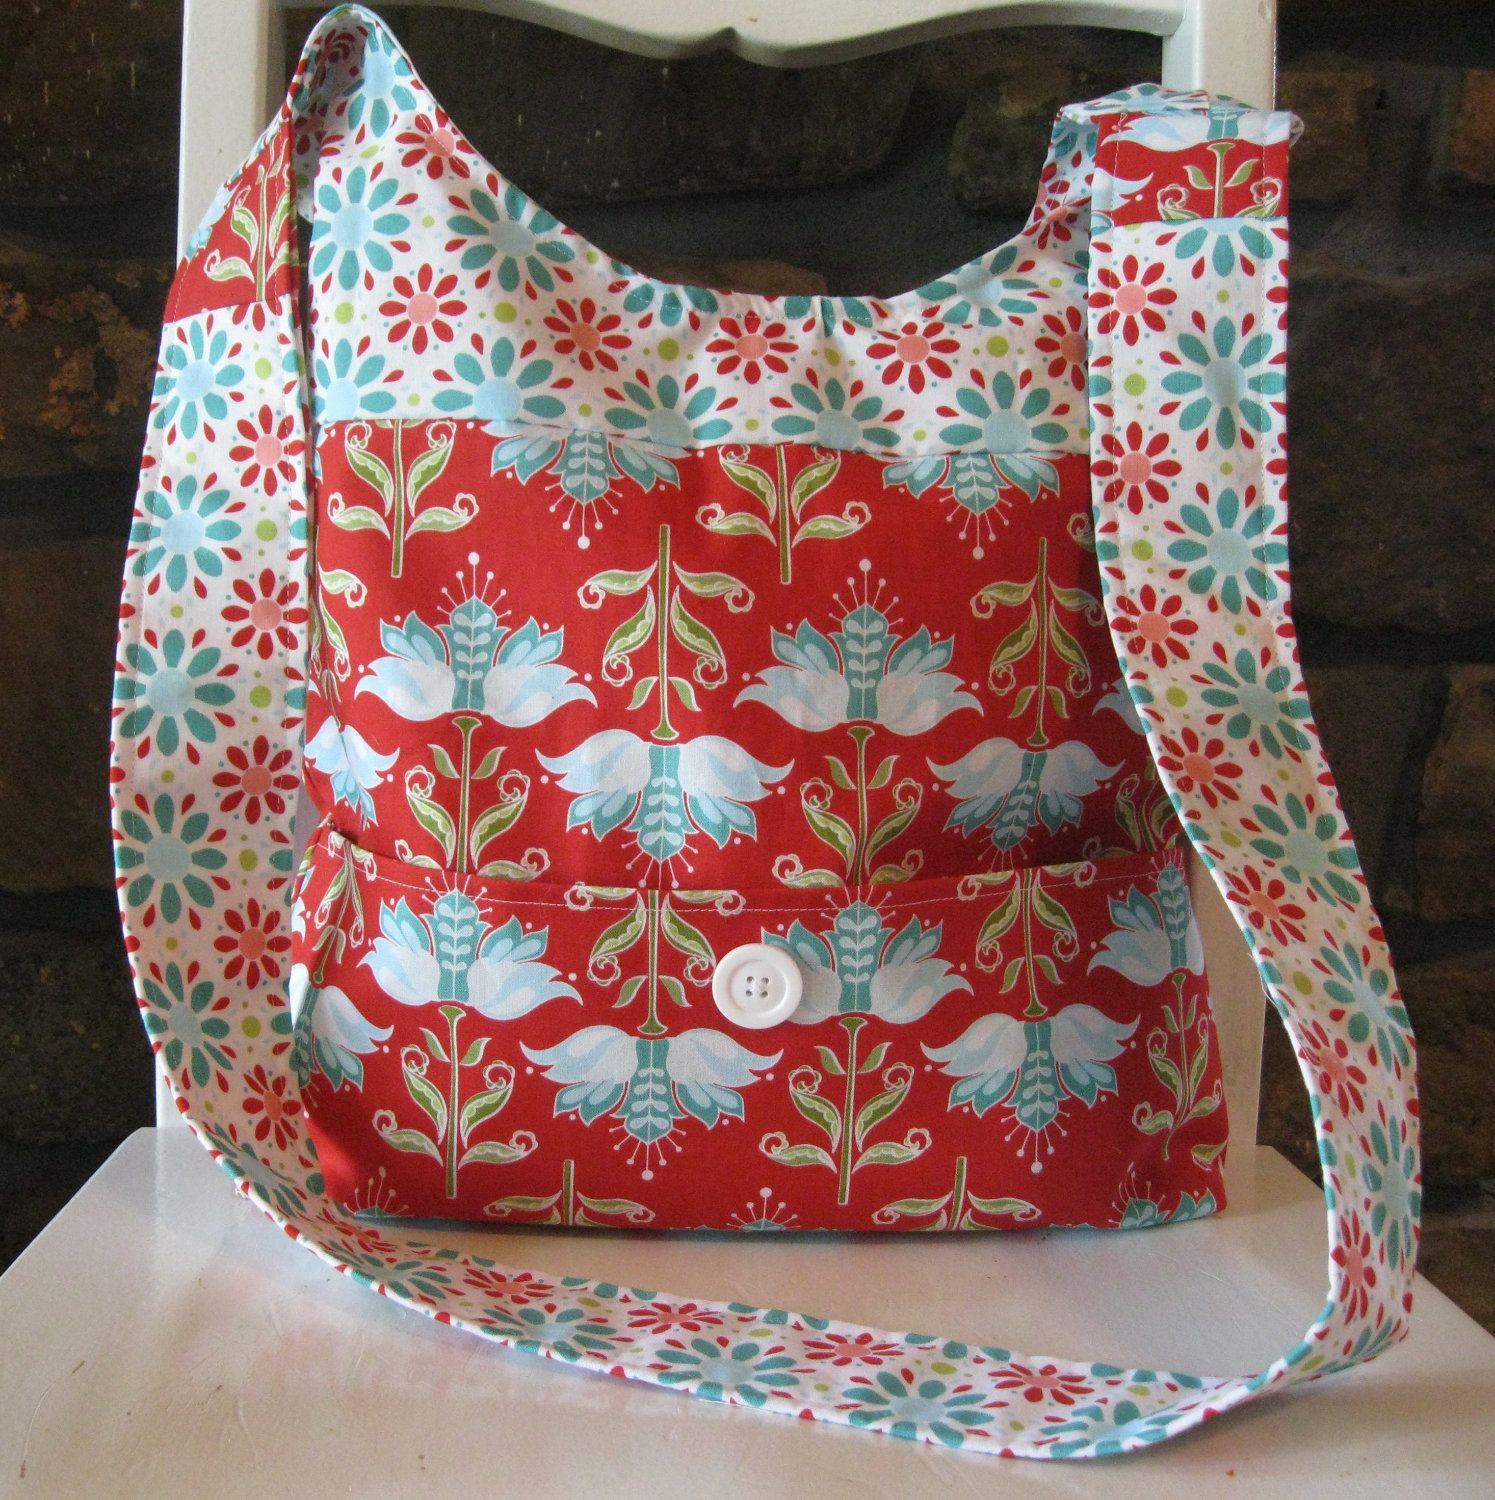 152518d2cd5e Handmade Fabric Bags Purses - Shoulder Bag - Riley Blake - Red and ...